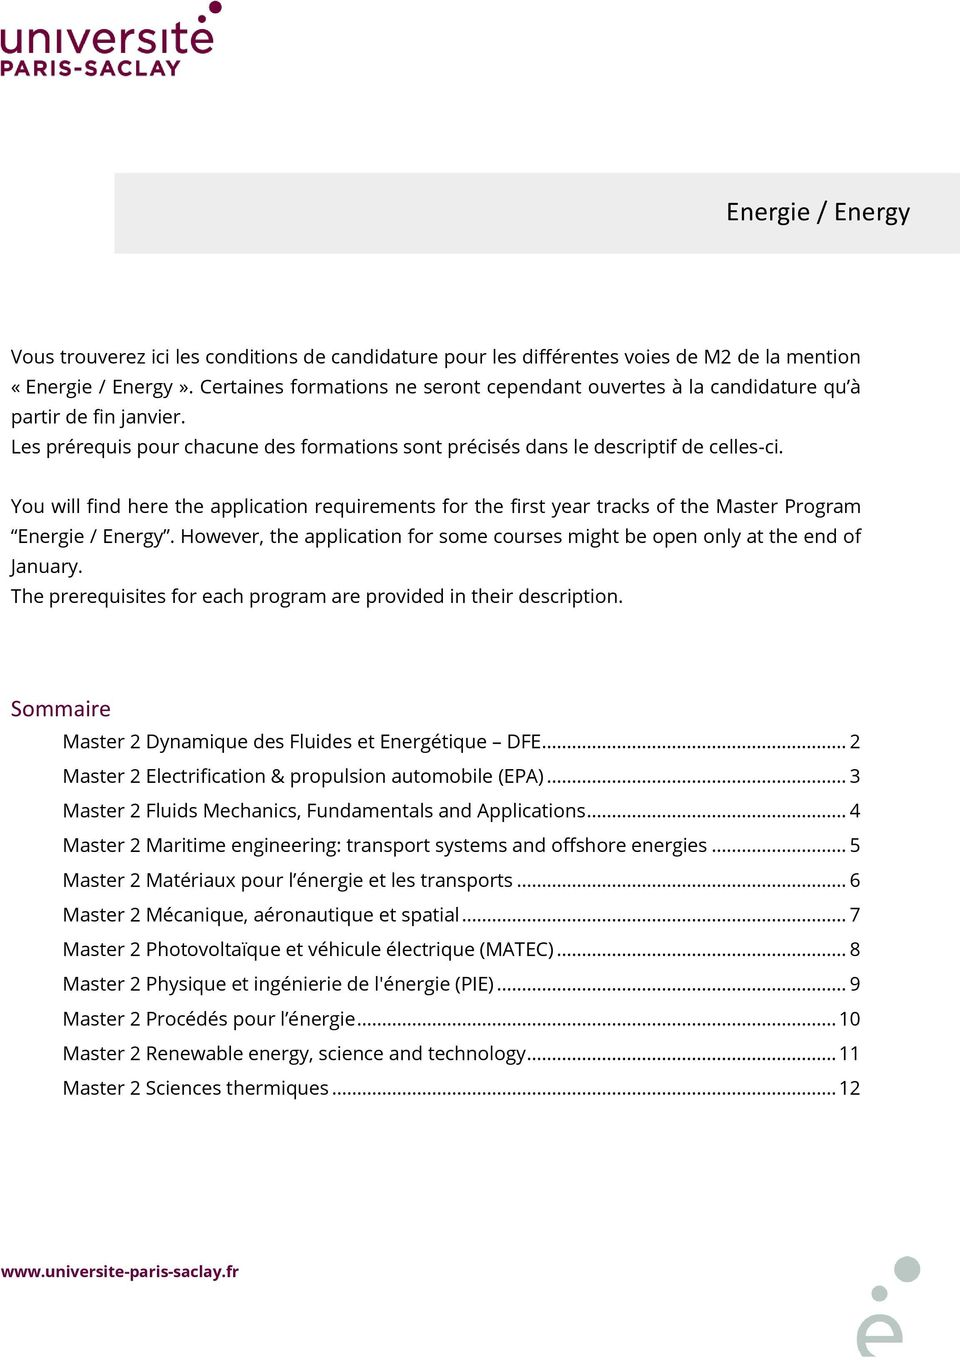 You will find here the application requirements for the first year tracks of the Master Program Energie / Energy. However, the application for some courses might be open only at the end of January.